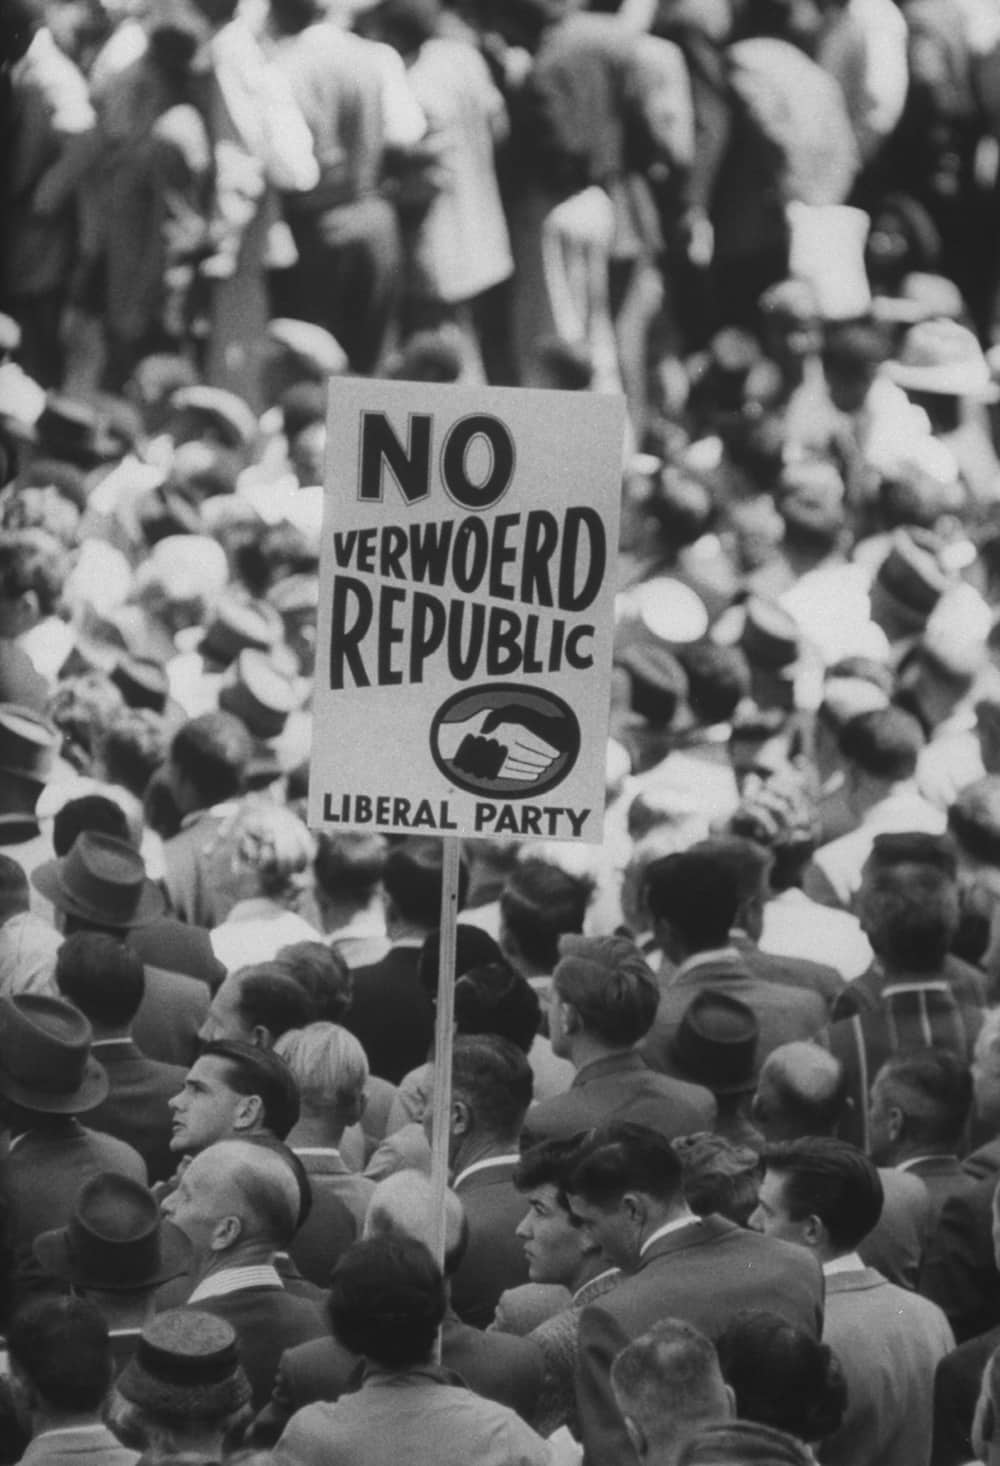 People voting for or against a republic. Photo by Terence Spencer/The LIFE Images Collection